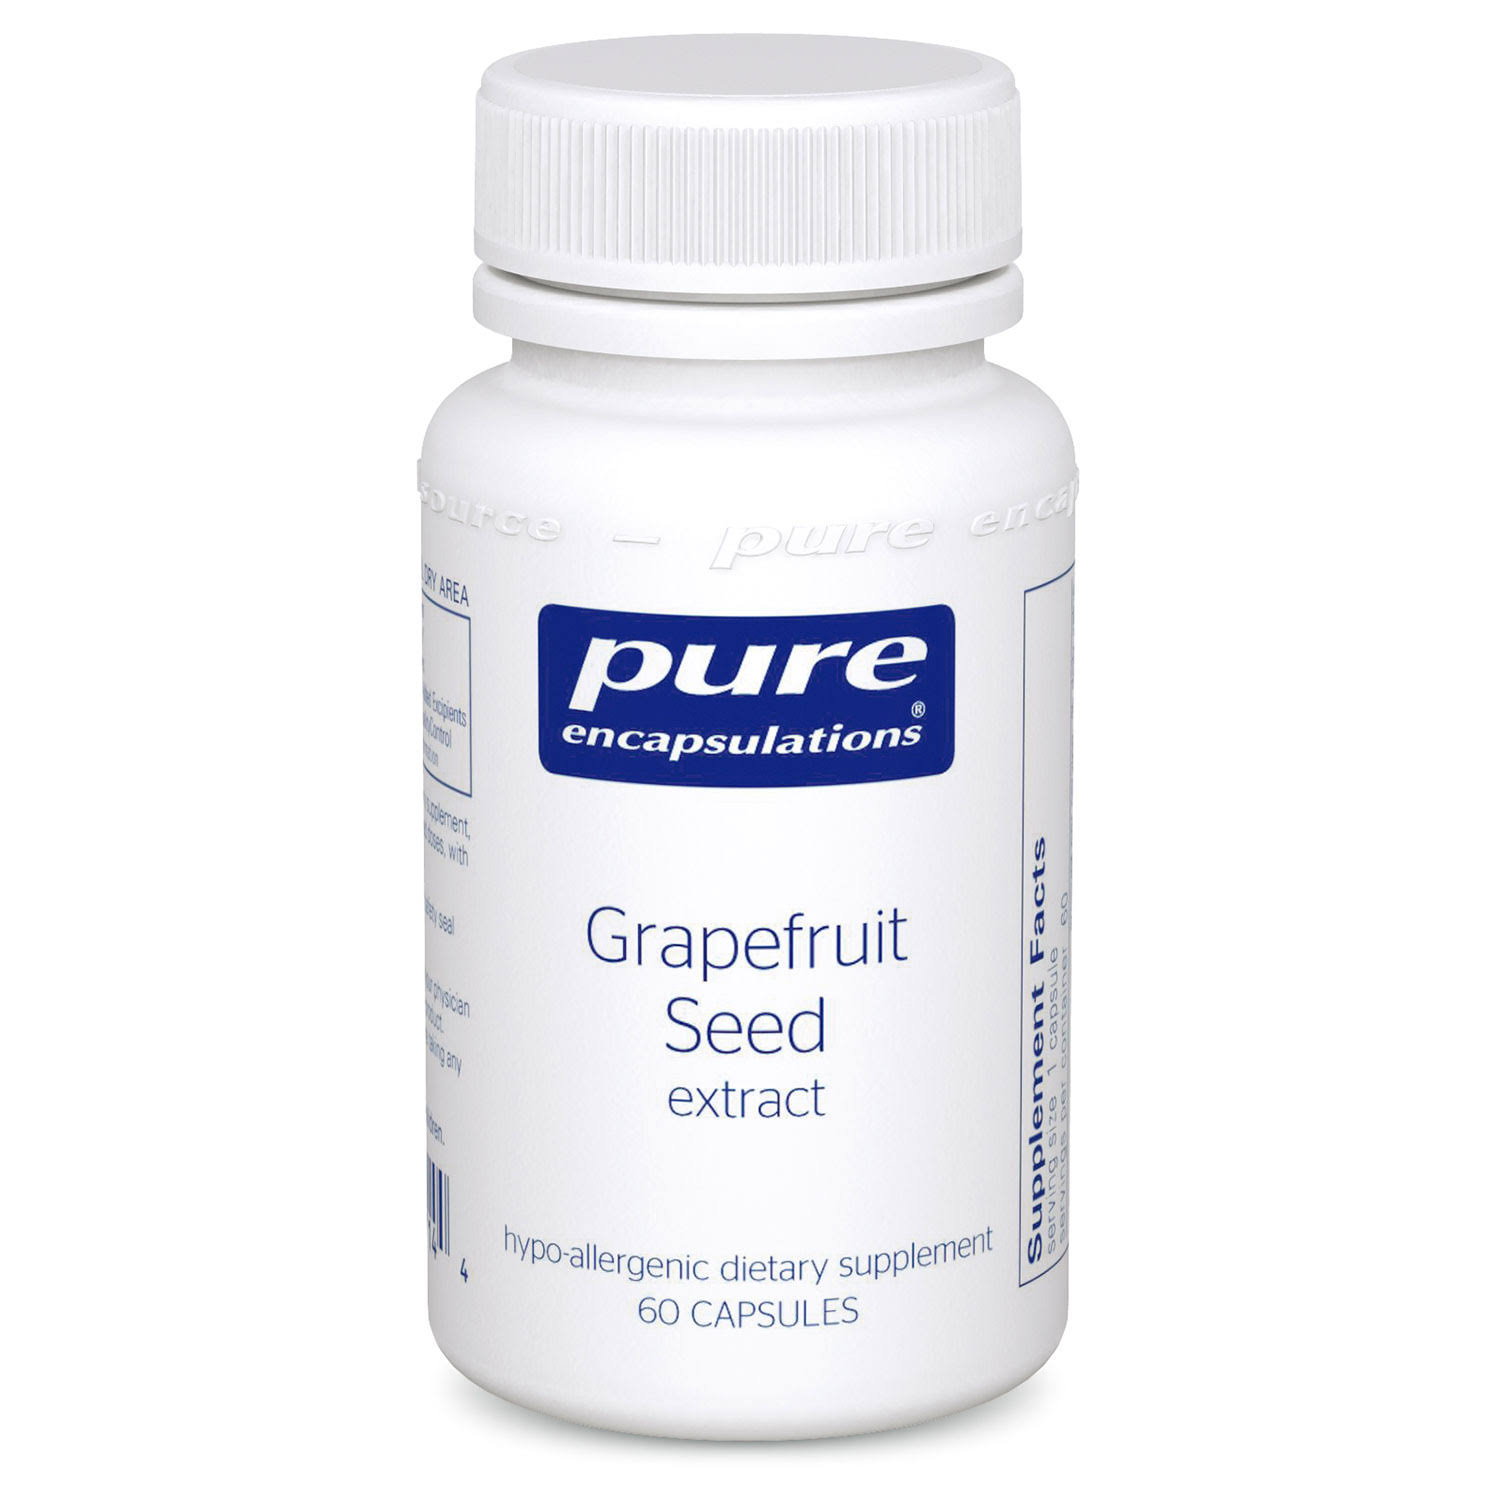 Pure Encapsulations - Grapefruit Seed Extract - 60 Capsules